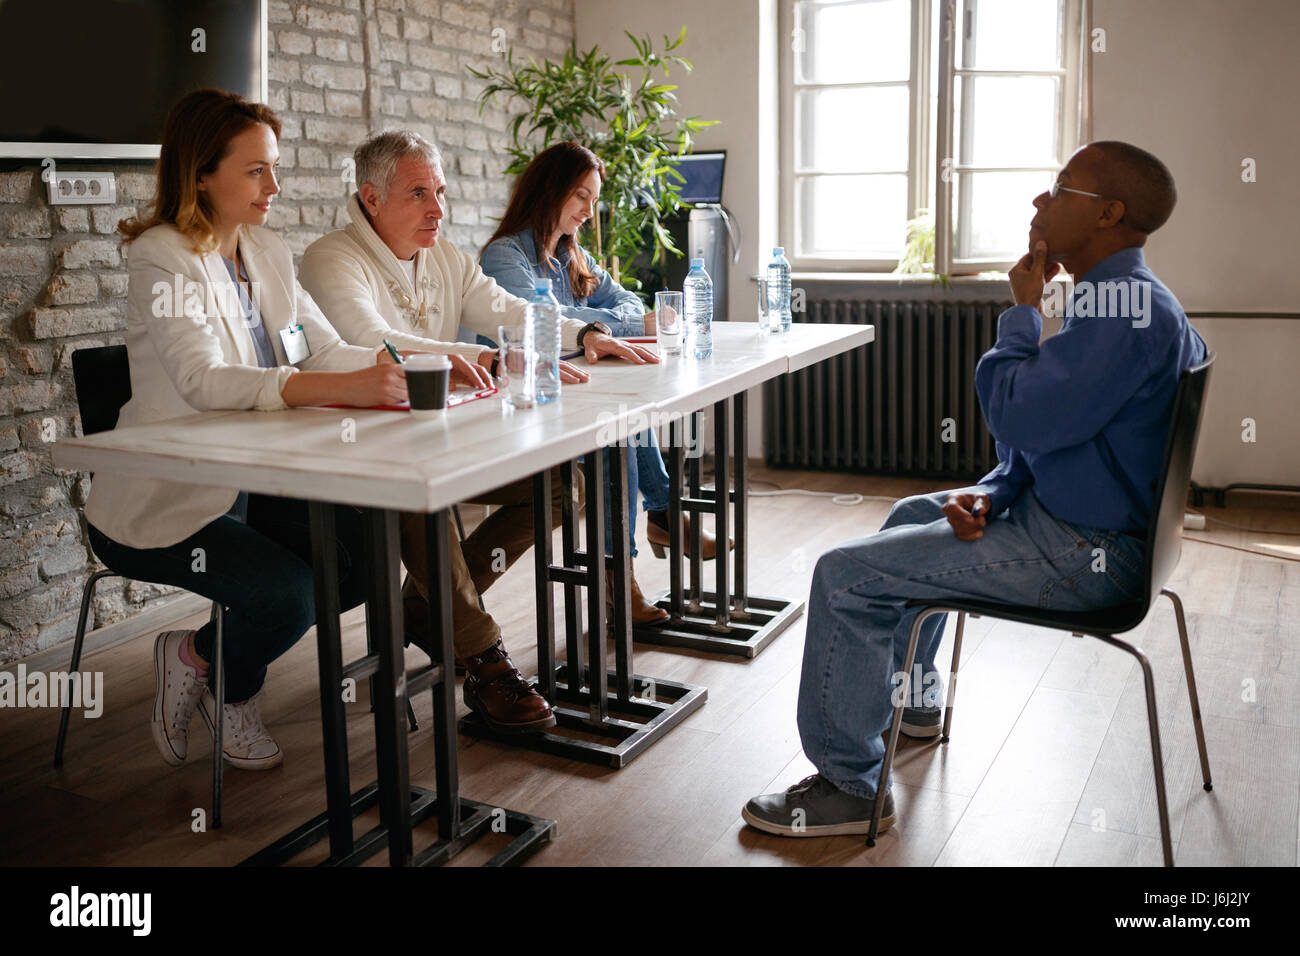 interview for job -candidate talking with business people team in the office - Stock Image